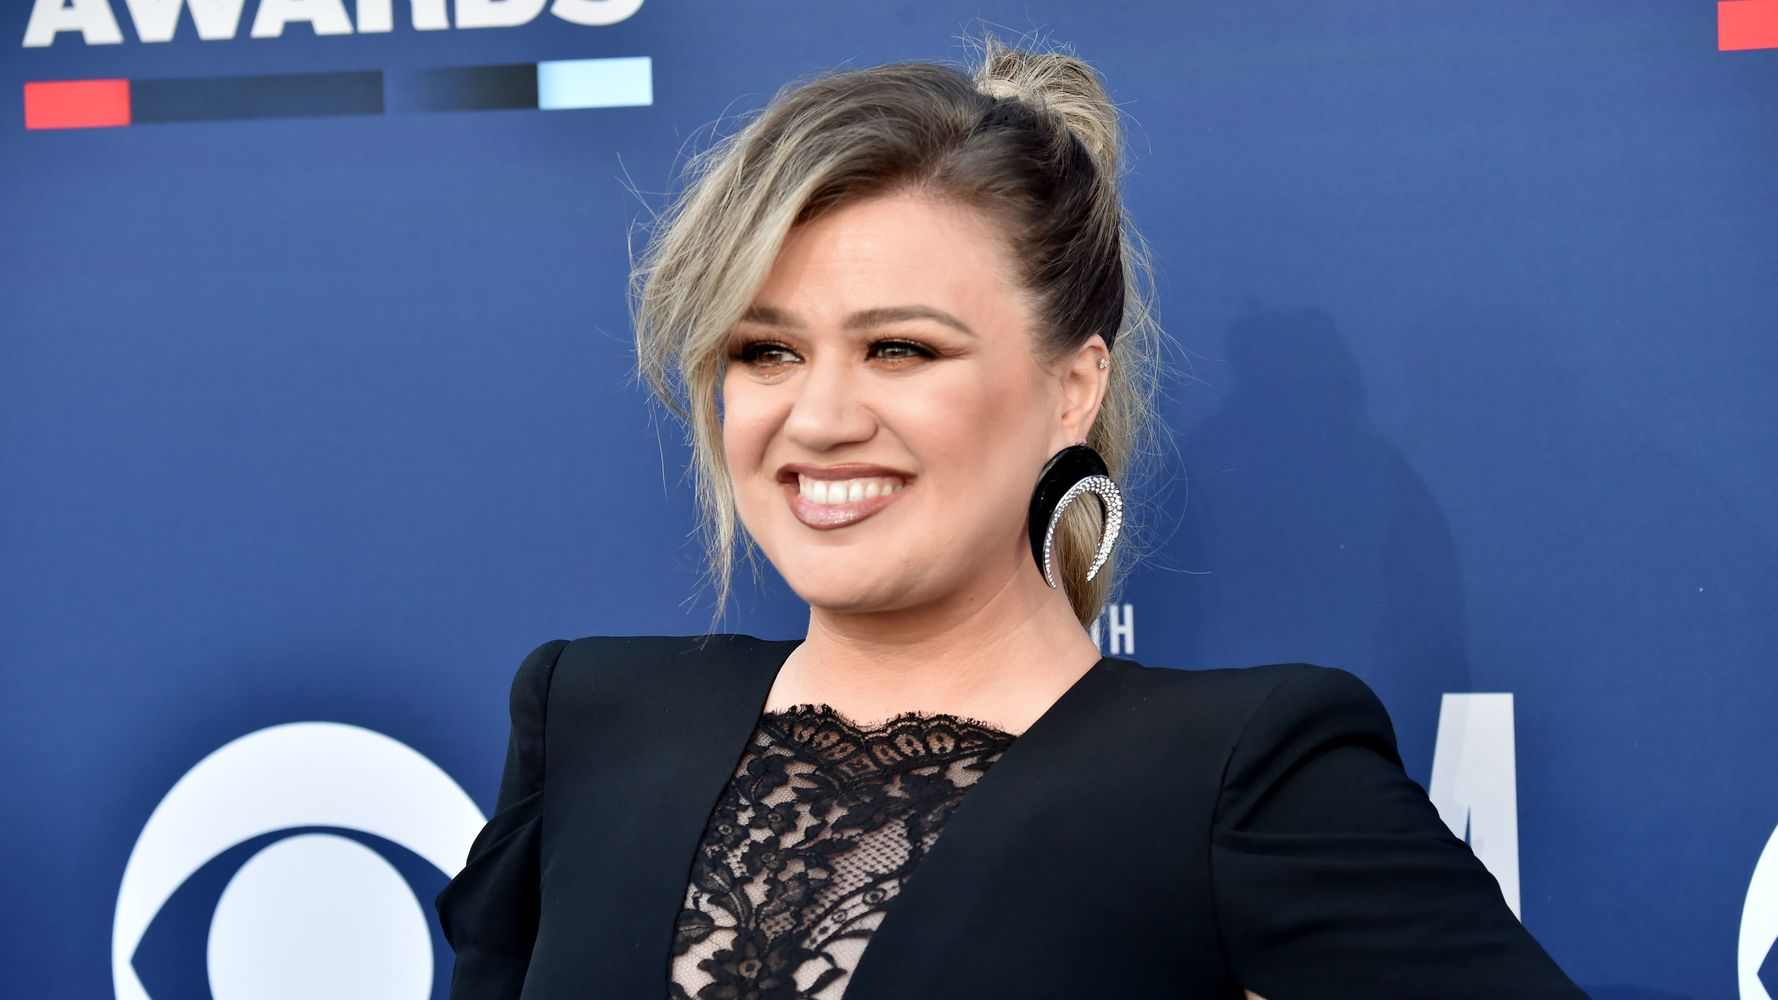 Kelly Clarkson Was Mistaken For A Seat Filler And Handled